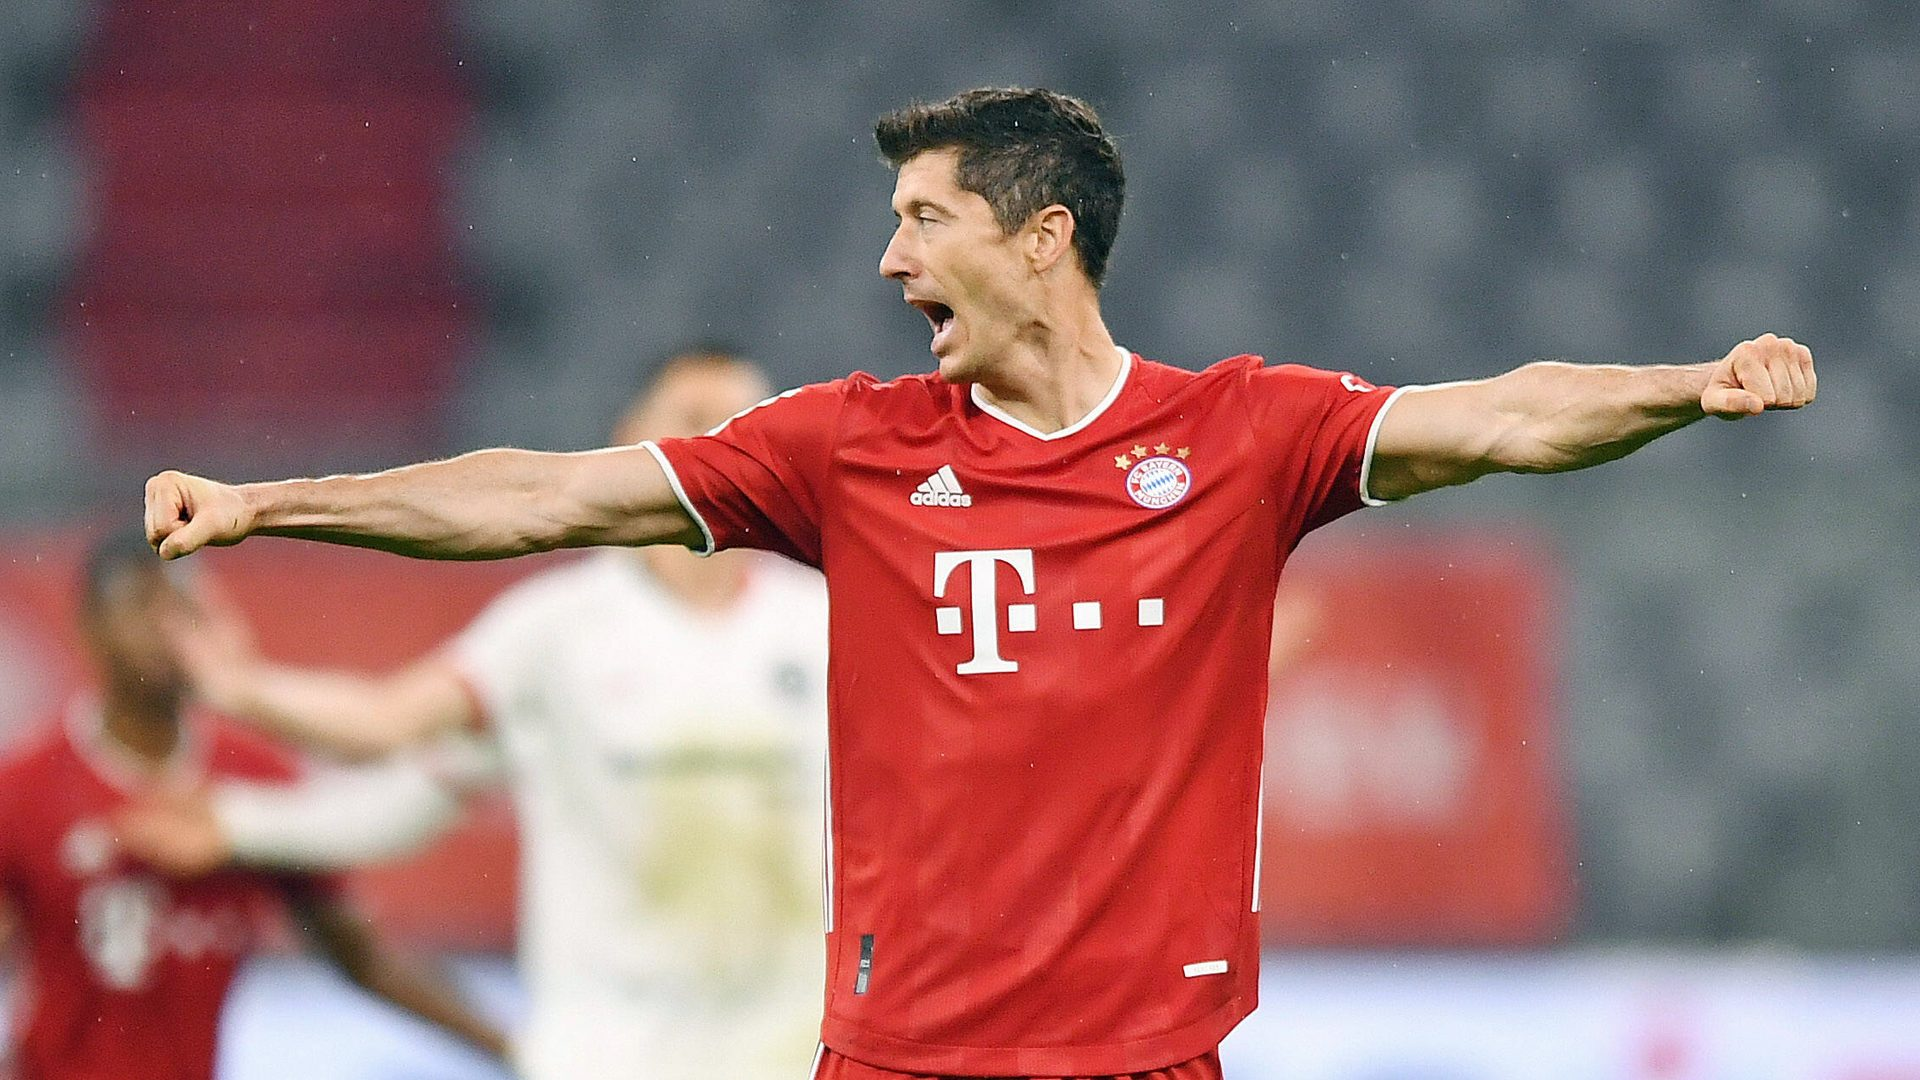 Bundesliga Robert Lewandowski Hits The Winner As Bayern Munich Overcome Eintracht Frankfurt To Reach Dfb Cup Final